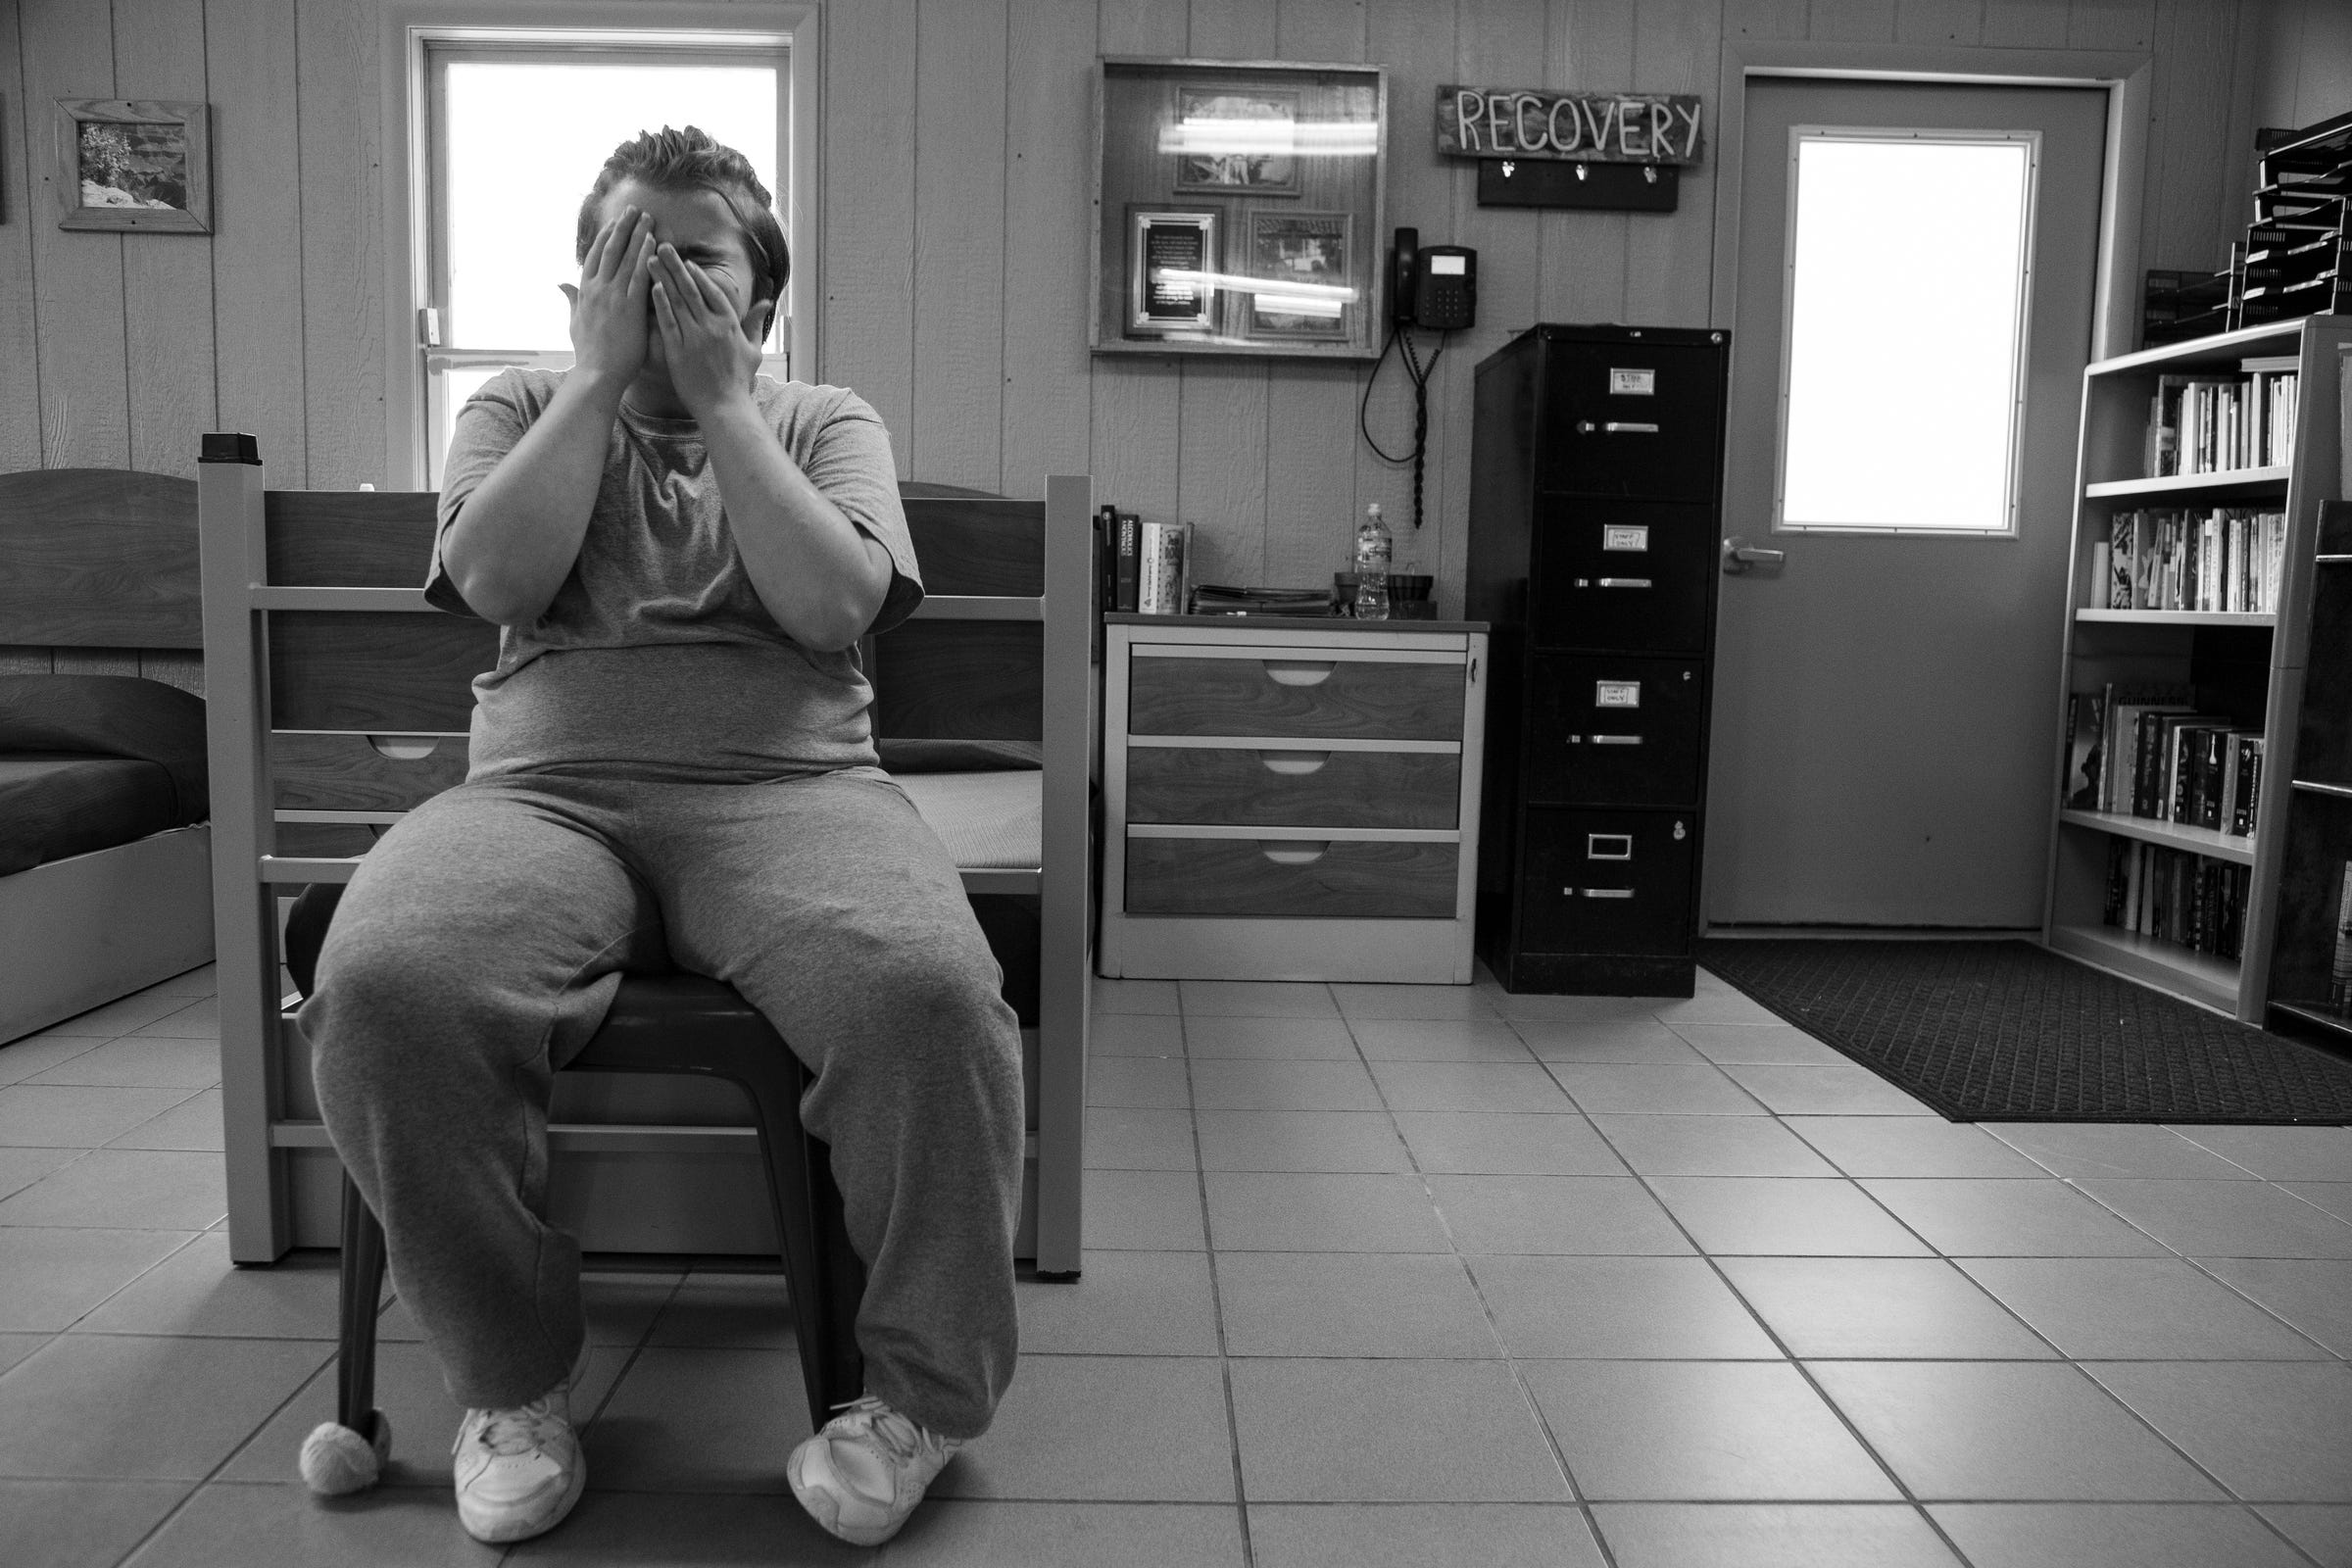 The Girl From Taylor sits in a chair by her bed Thursday, July 25, 2019, she along with other clients were court ordered to Wolverine Growth and Recovery Services in Vassar, a program designed to intervene with alcohol, drug and behavioral issues.